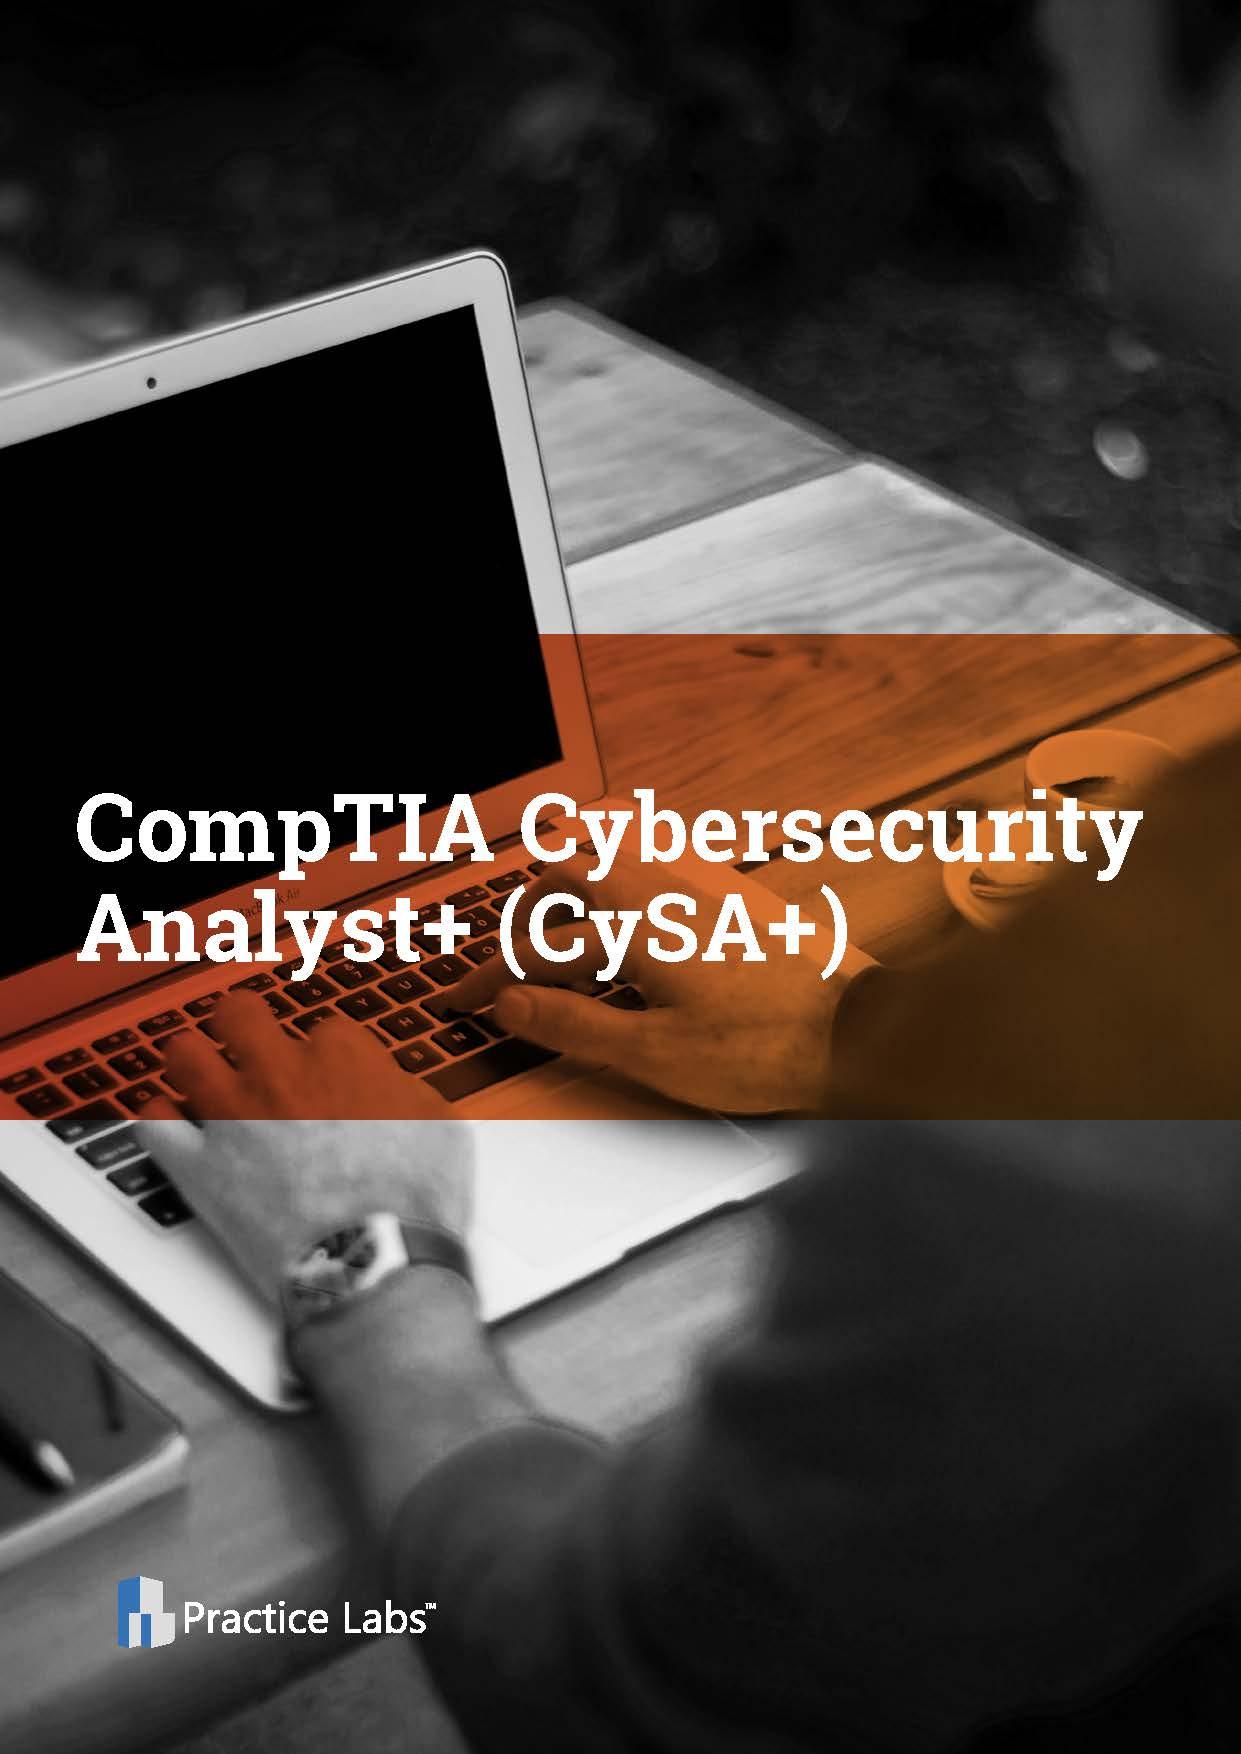 CompTIA Cybersecurity Analyst+ (CySA+)